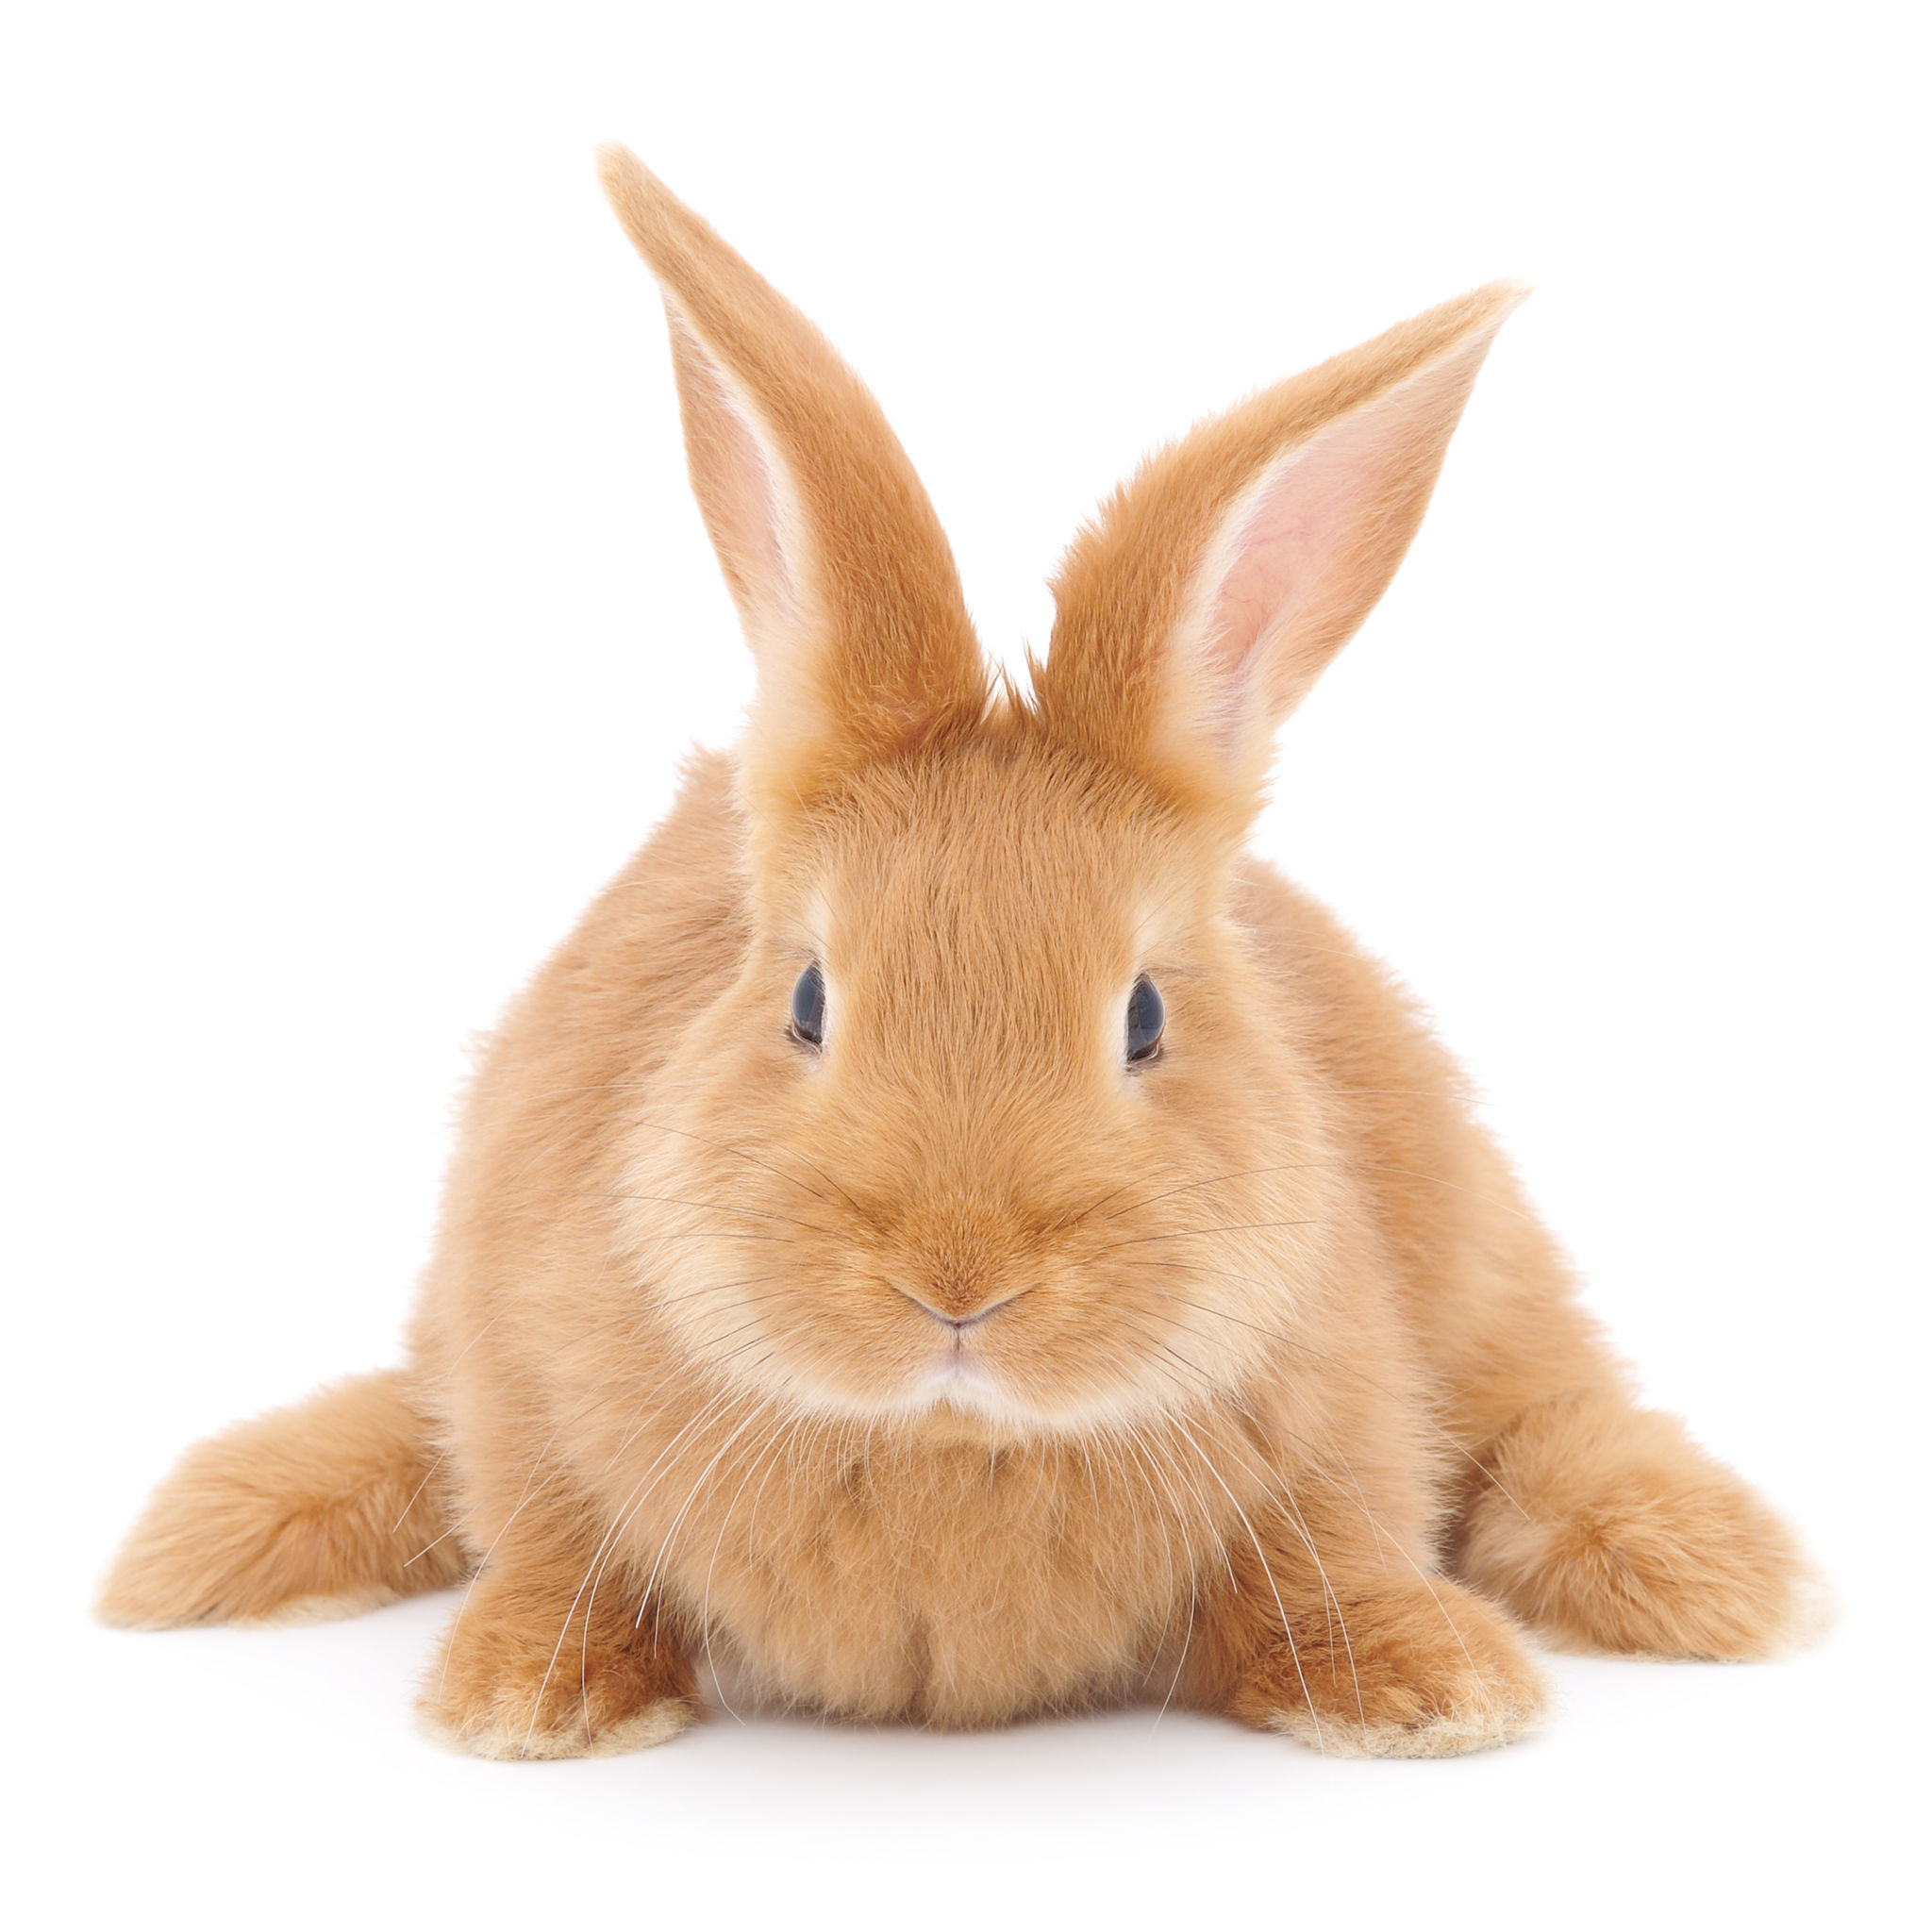 Reasons you should use cruelty-free makeup